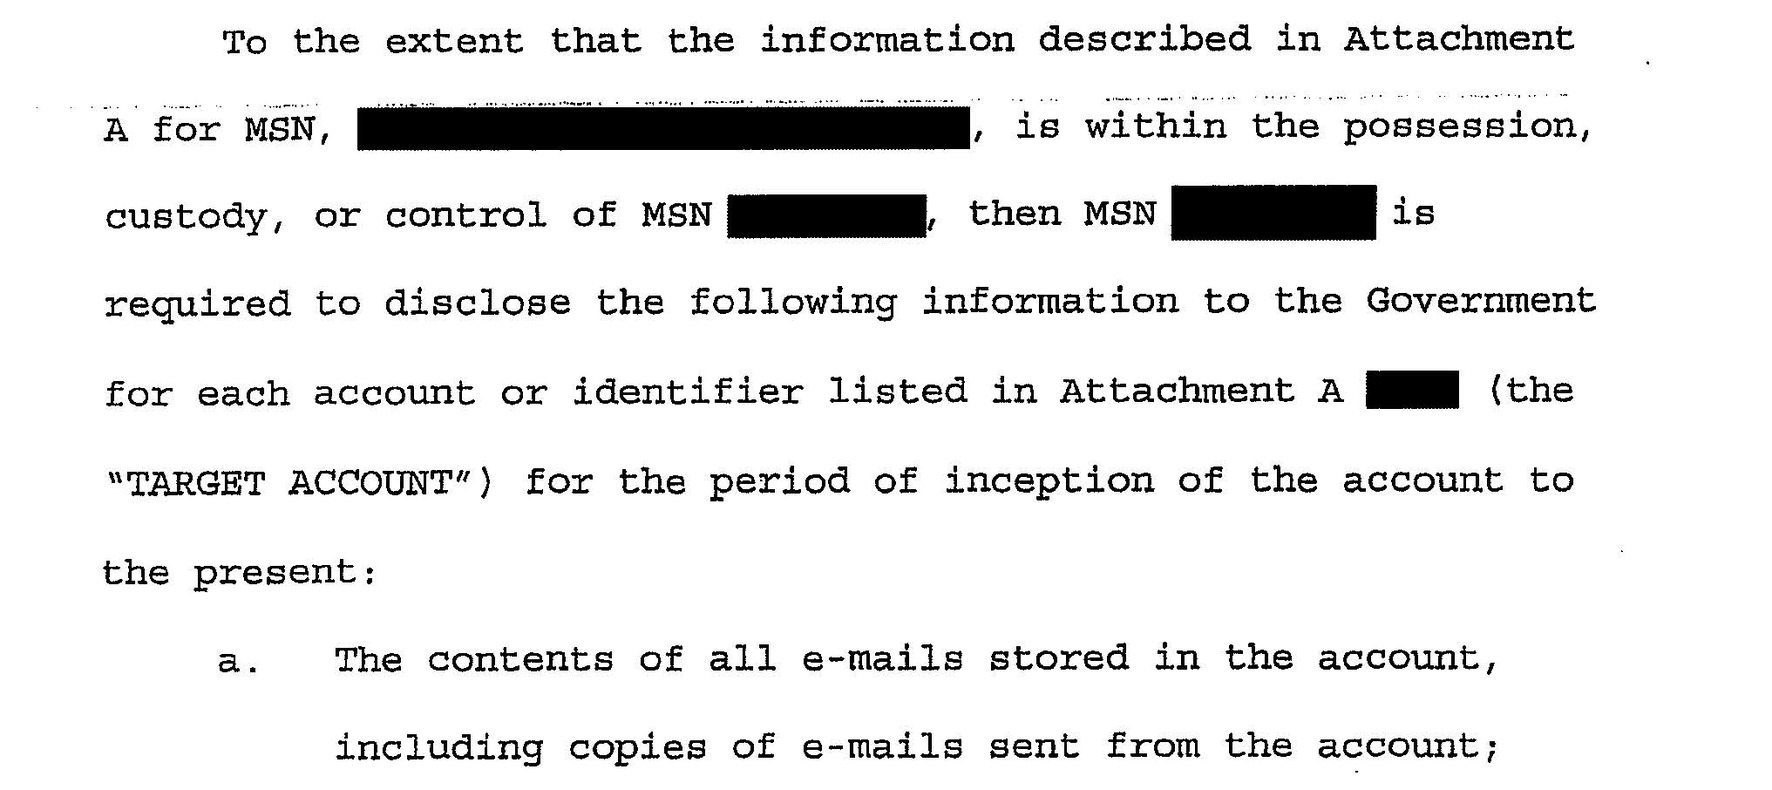 The warrant orders Microsoft to turn over every email in an account – including every sent message.